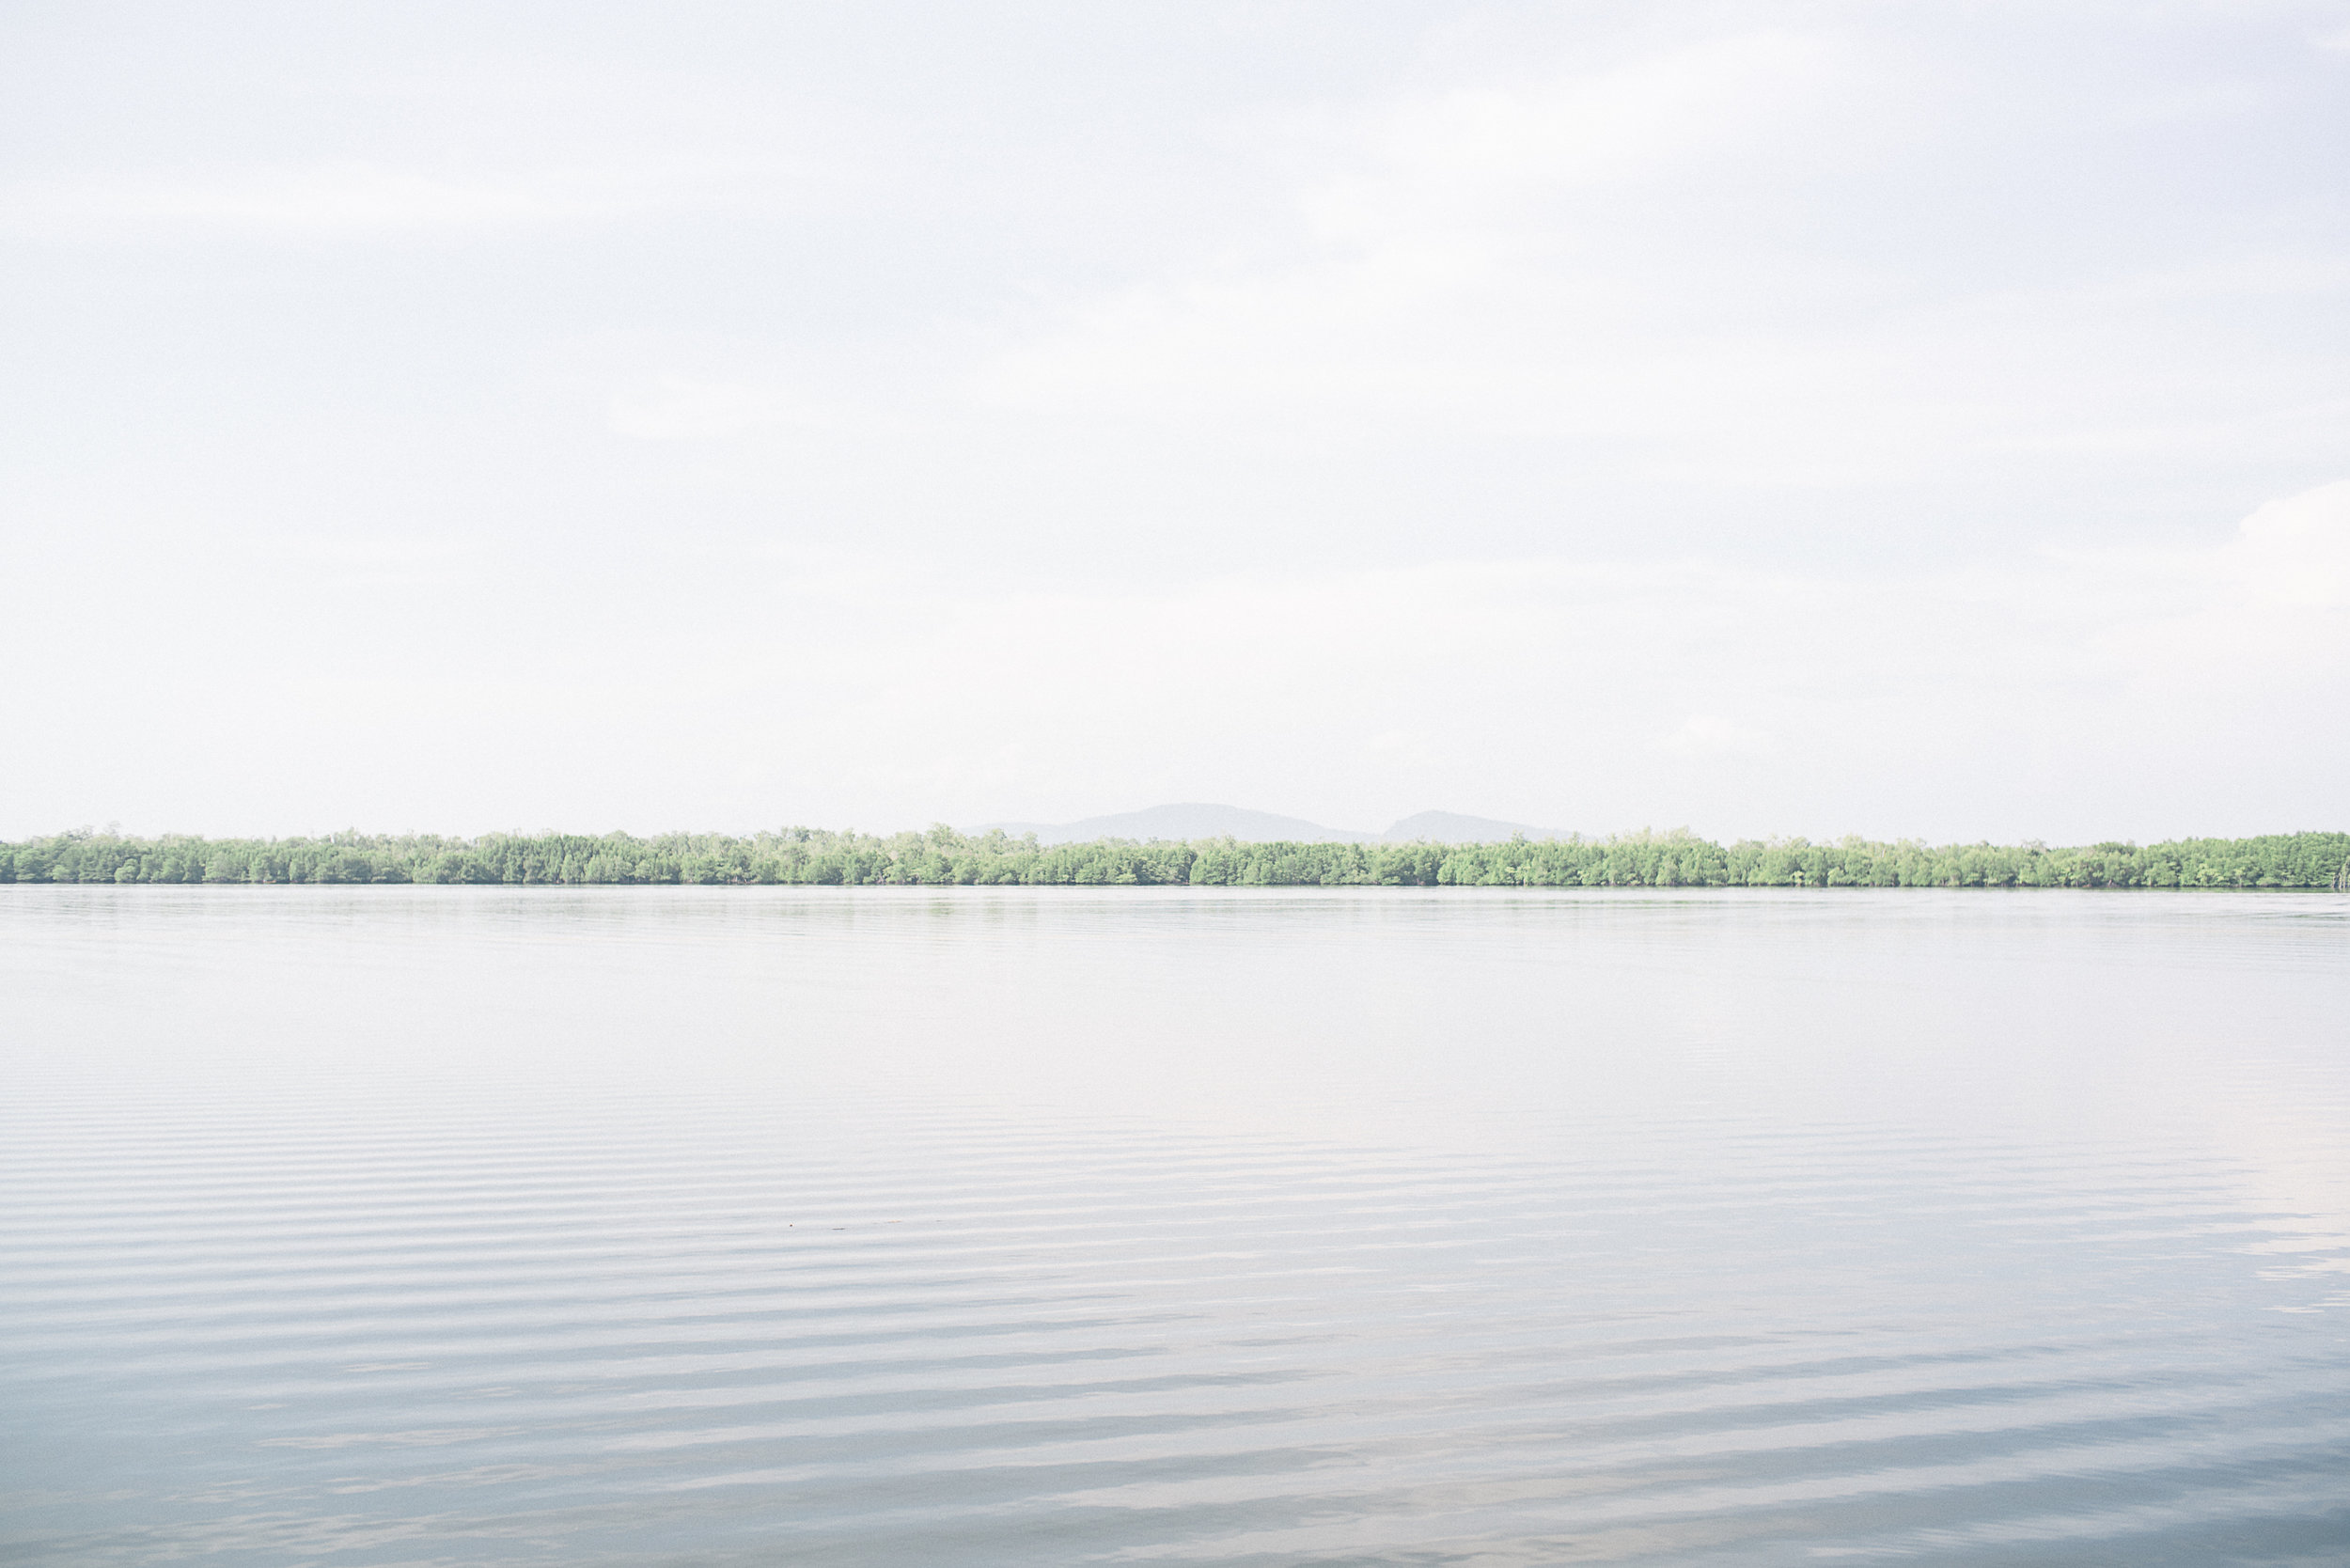 The tributary networks in the Koh Kong province can stretch up to 100m wide and go as shallow to 1m deep.